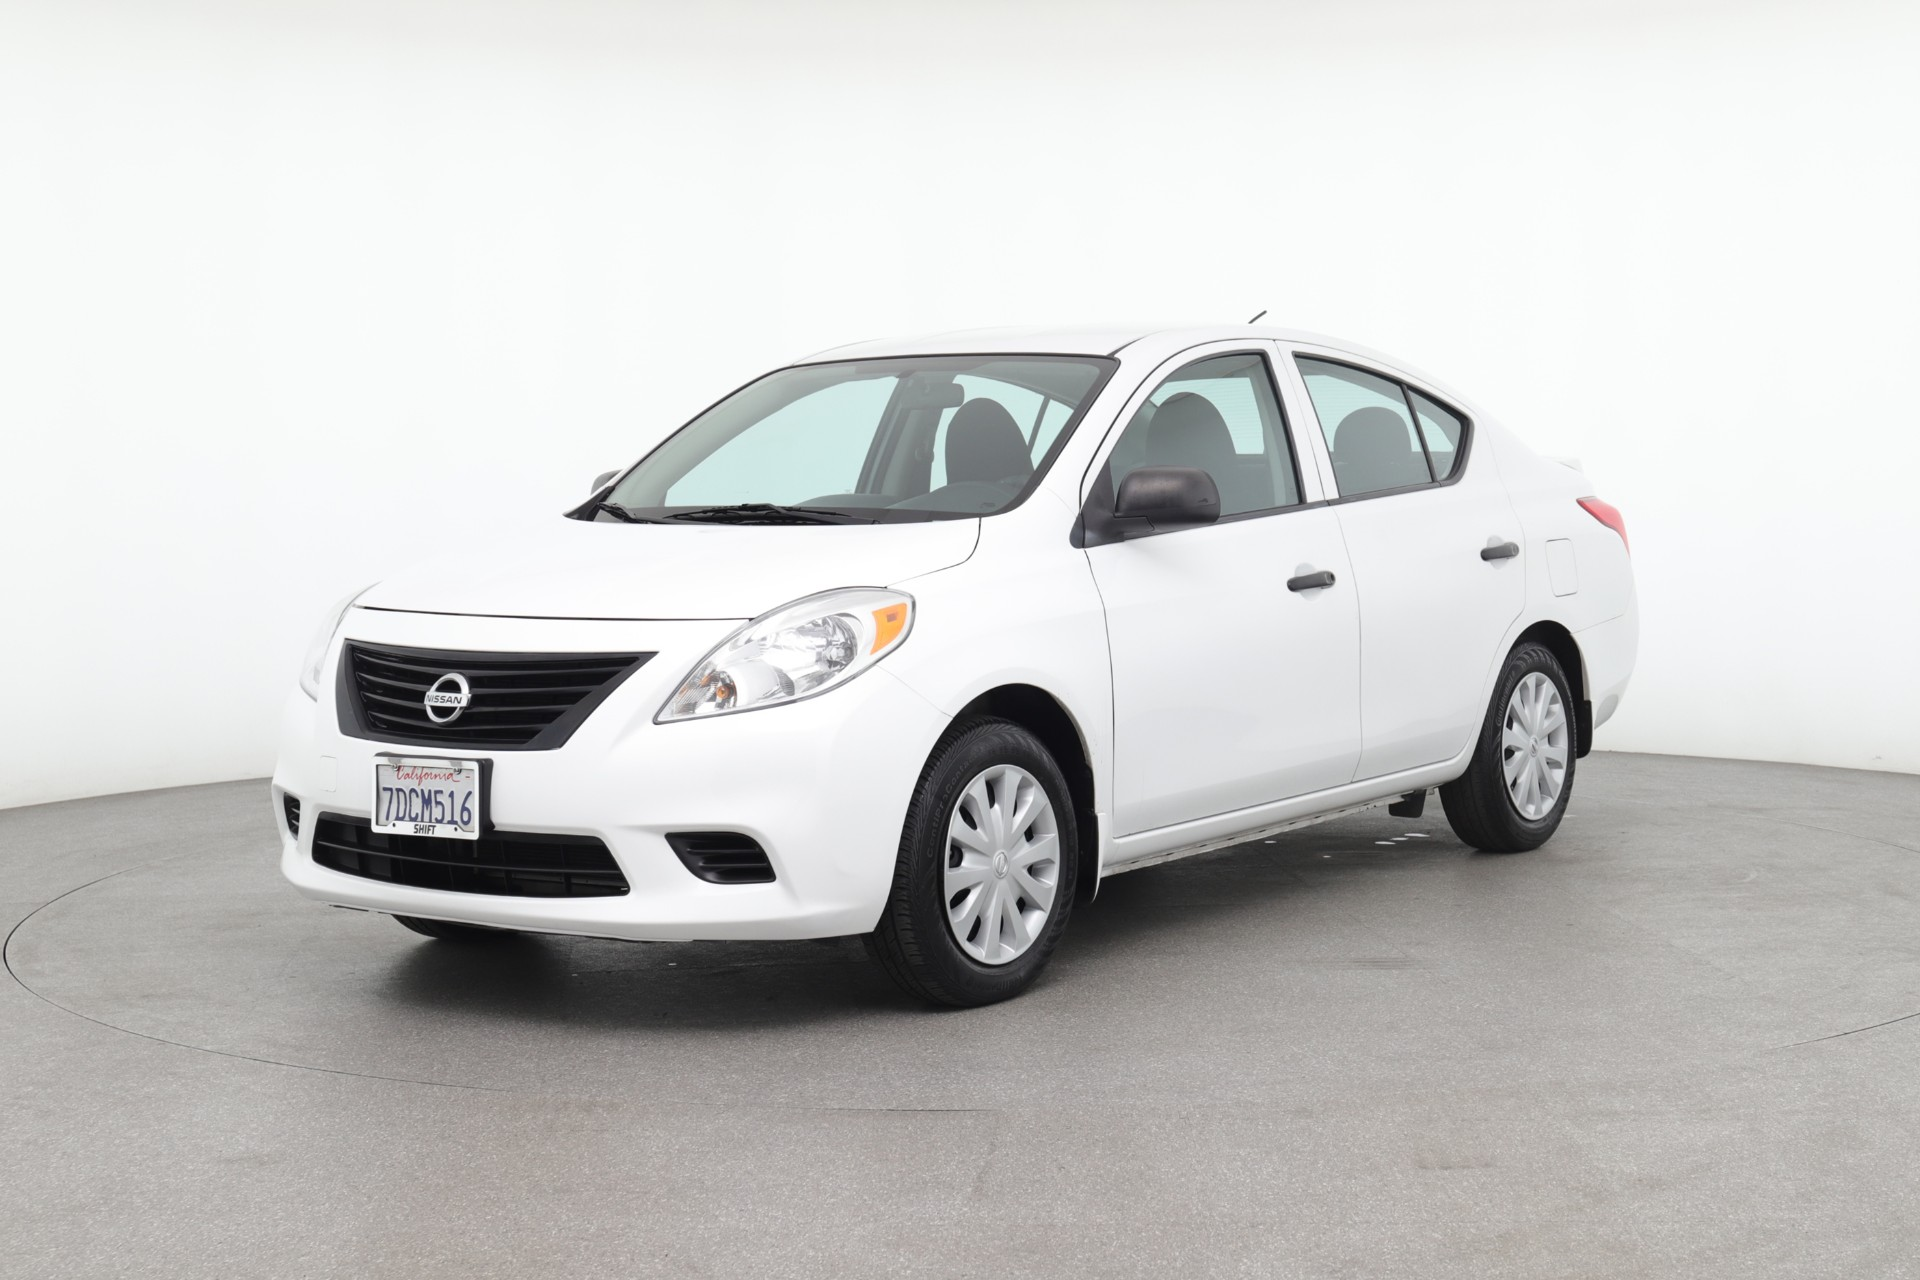 2014 Nissan Versa S Plus (from $9,950)